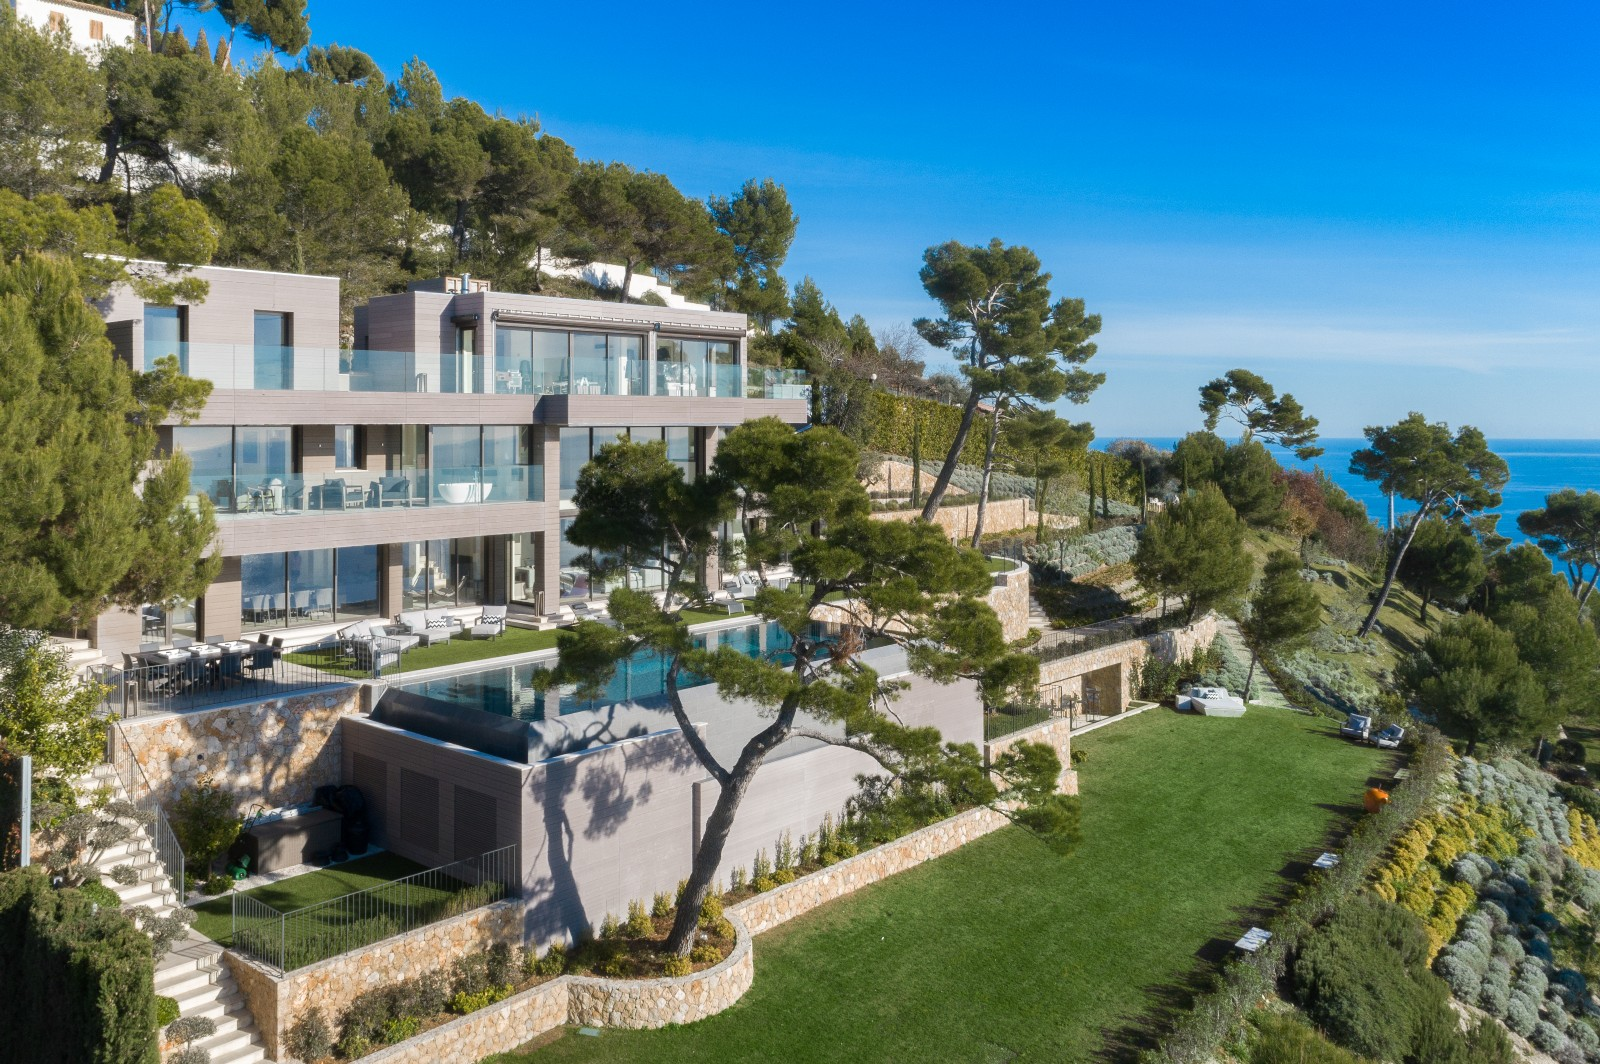 EZE - AMAZING PROPERTY FOR SALE